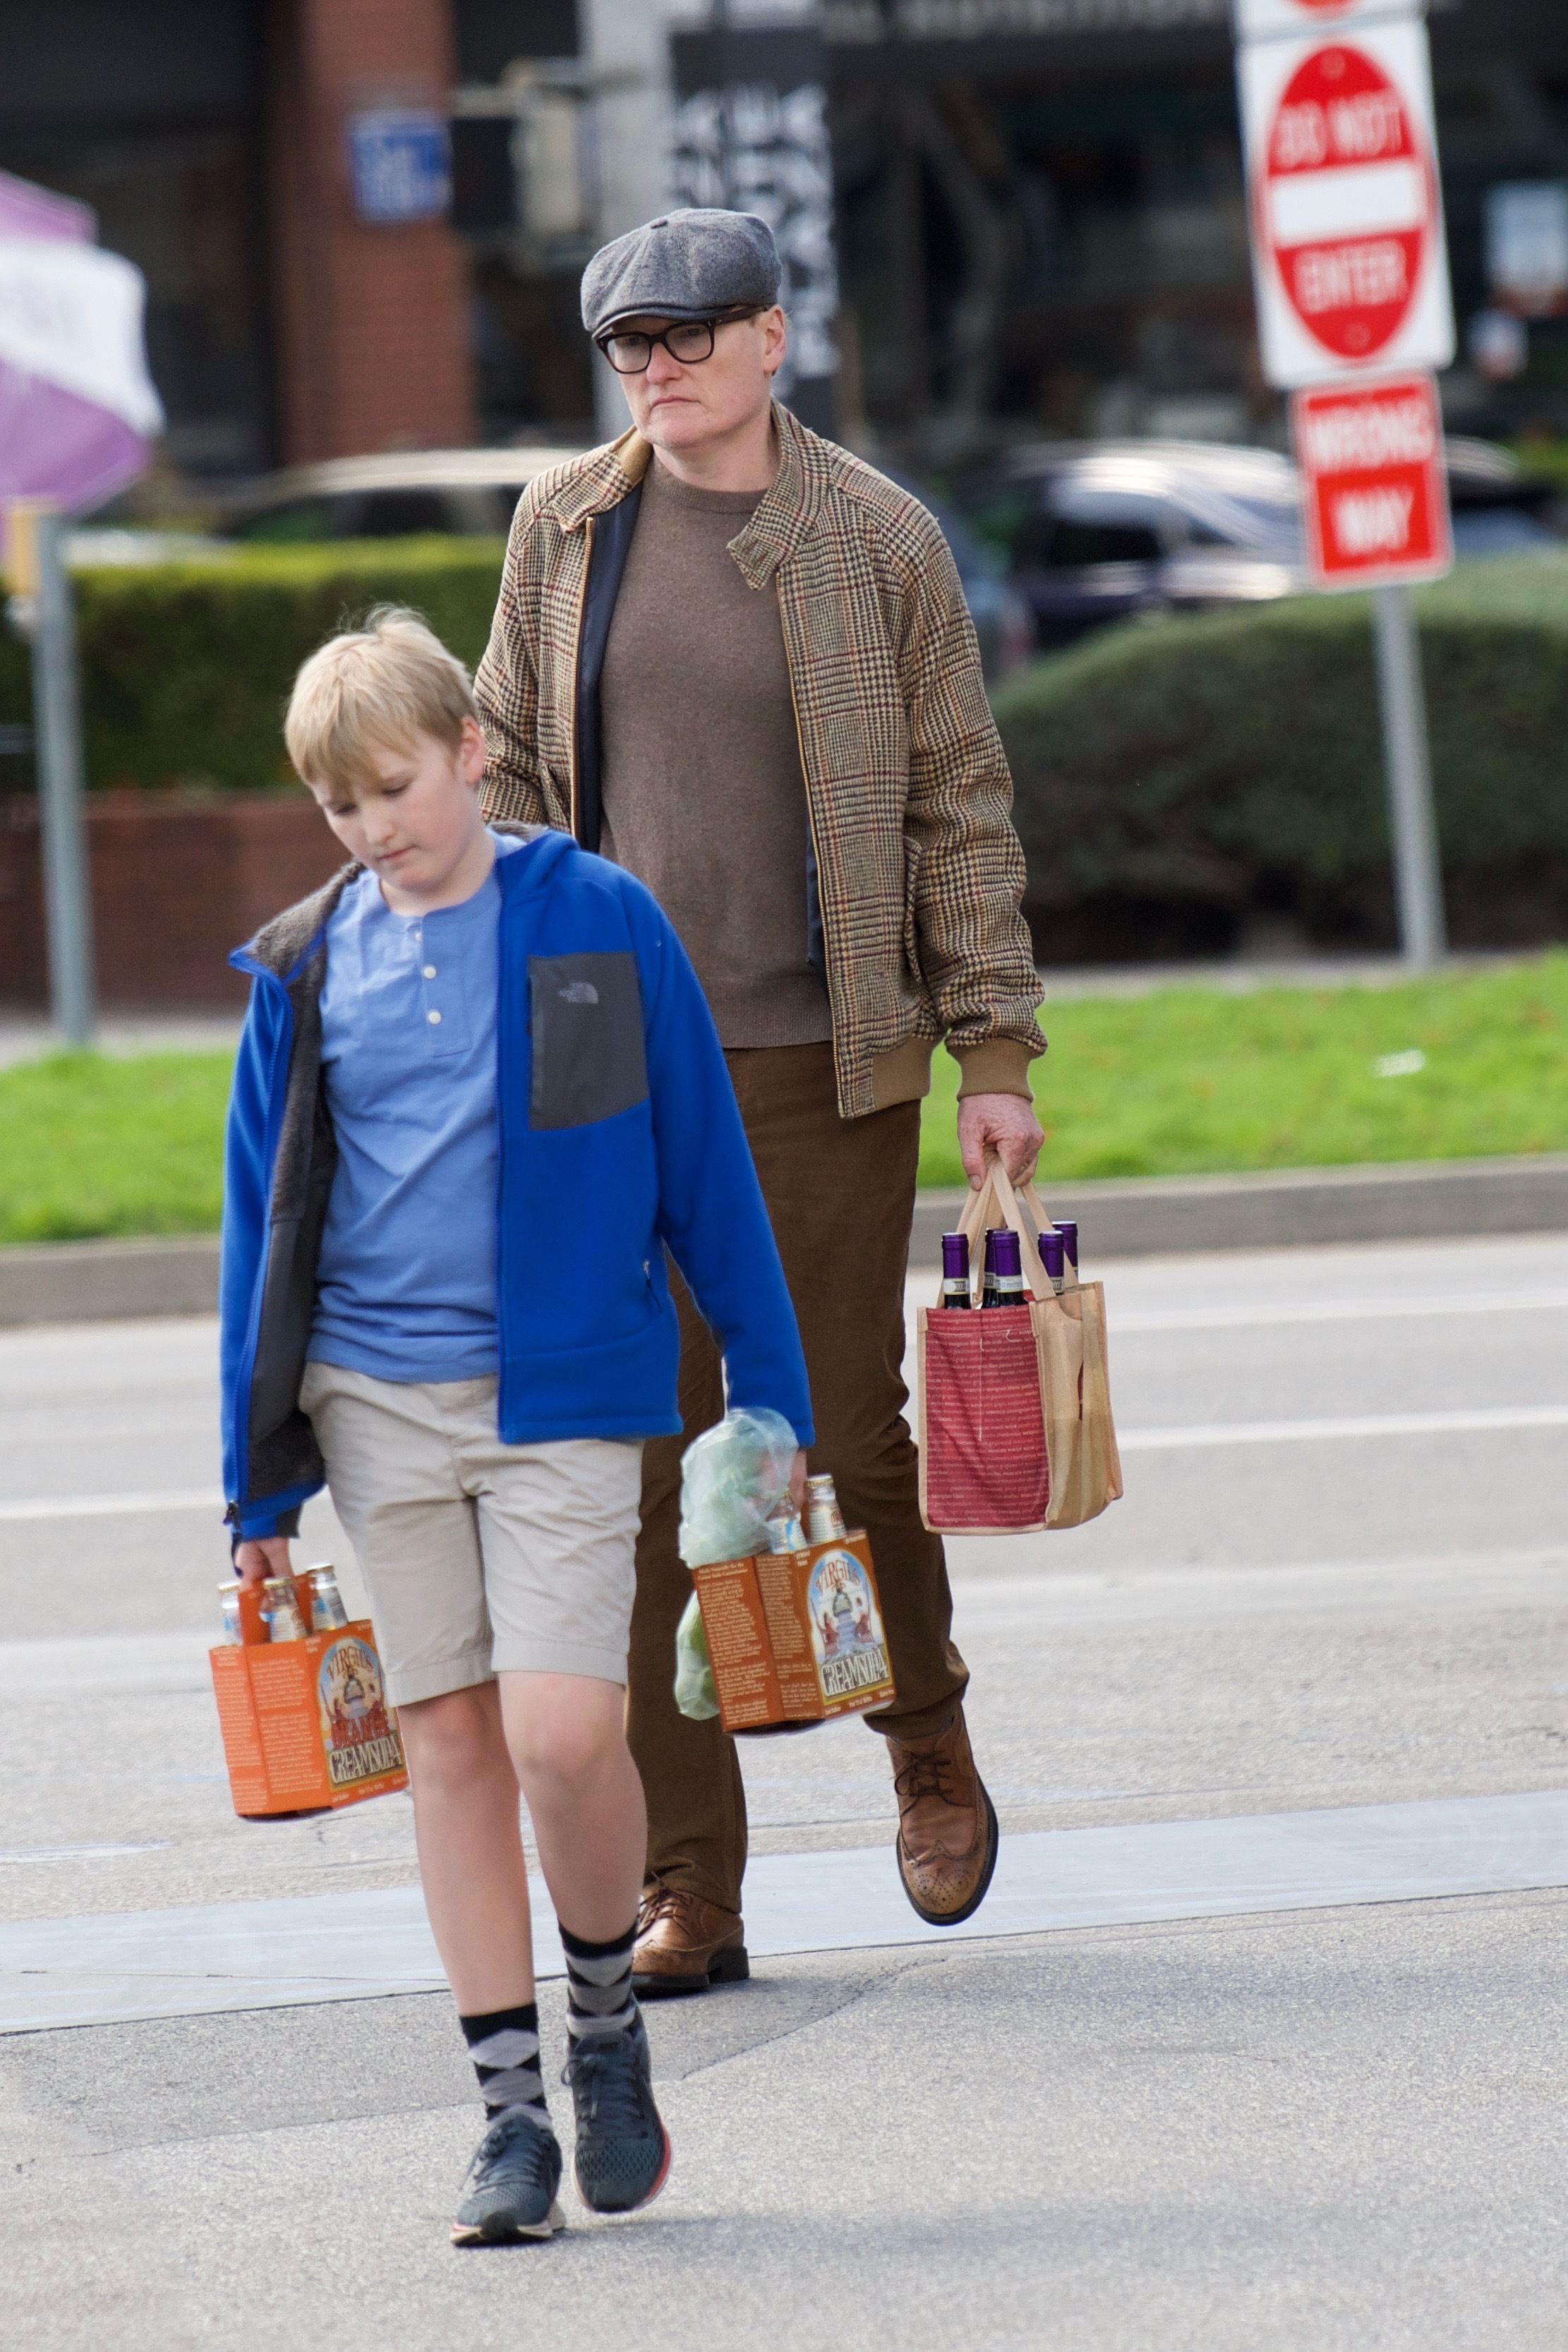 Conan O'Brien  and his son Beckett were spotted doing some shopping in Los Angeles on March 28, 2018.